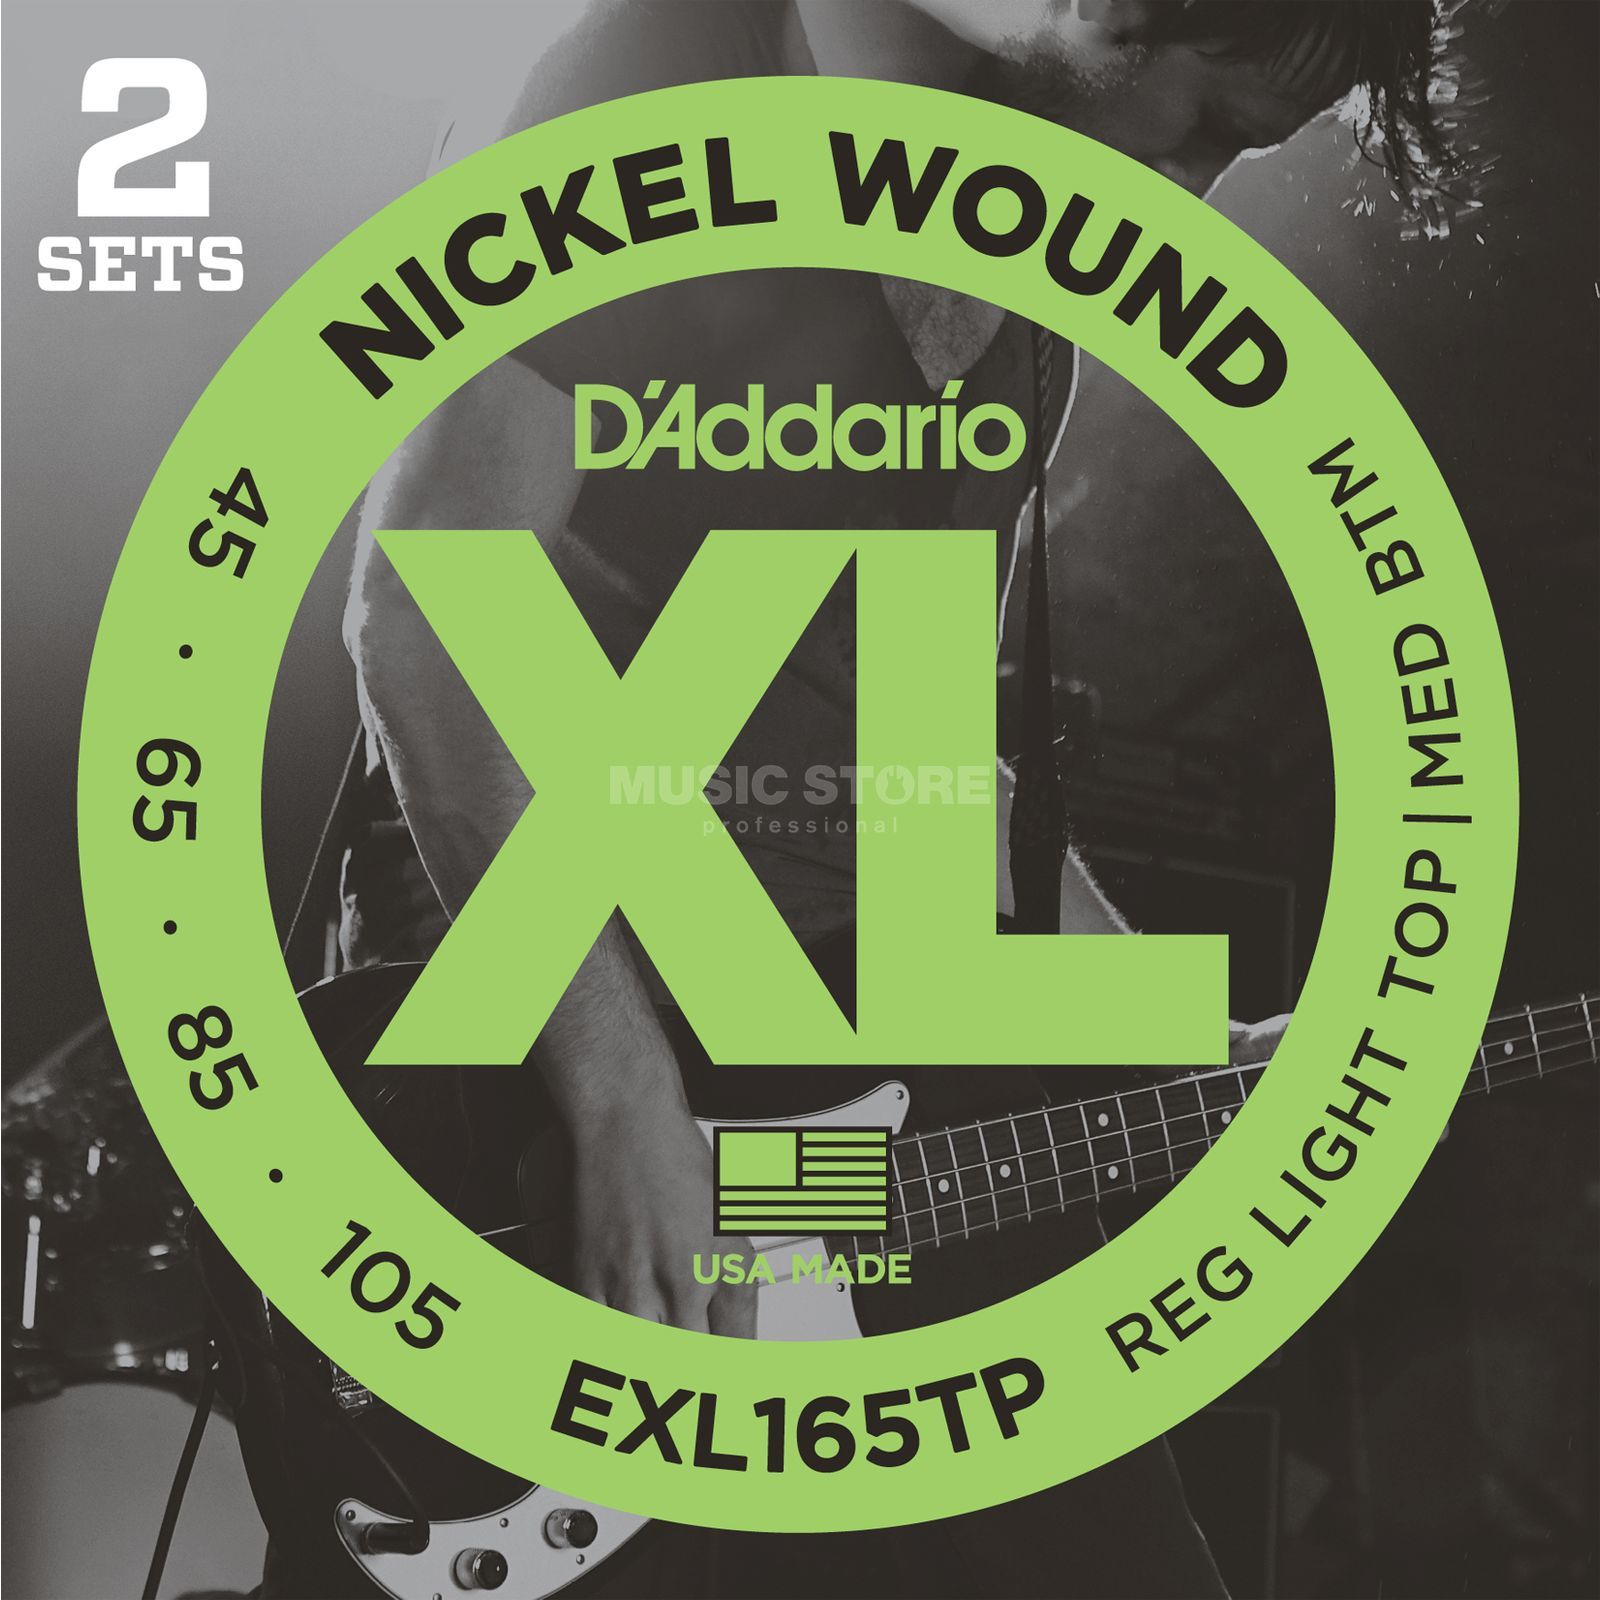 D'Addario Bass Strings XL 45-105 2 Sets 045-065-085-105, EXL165TP Produktbillede